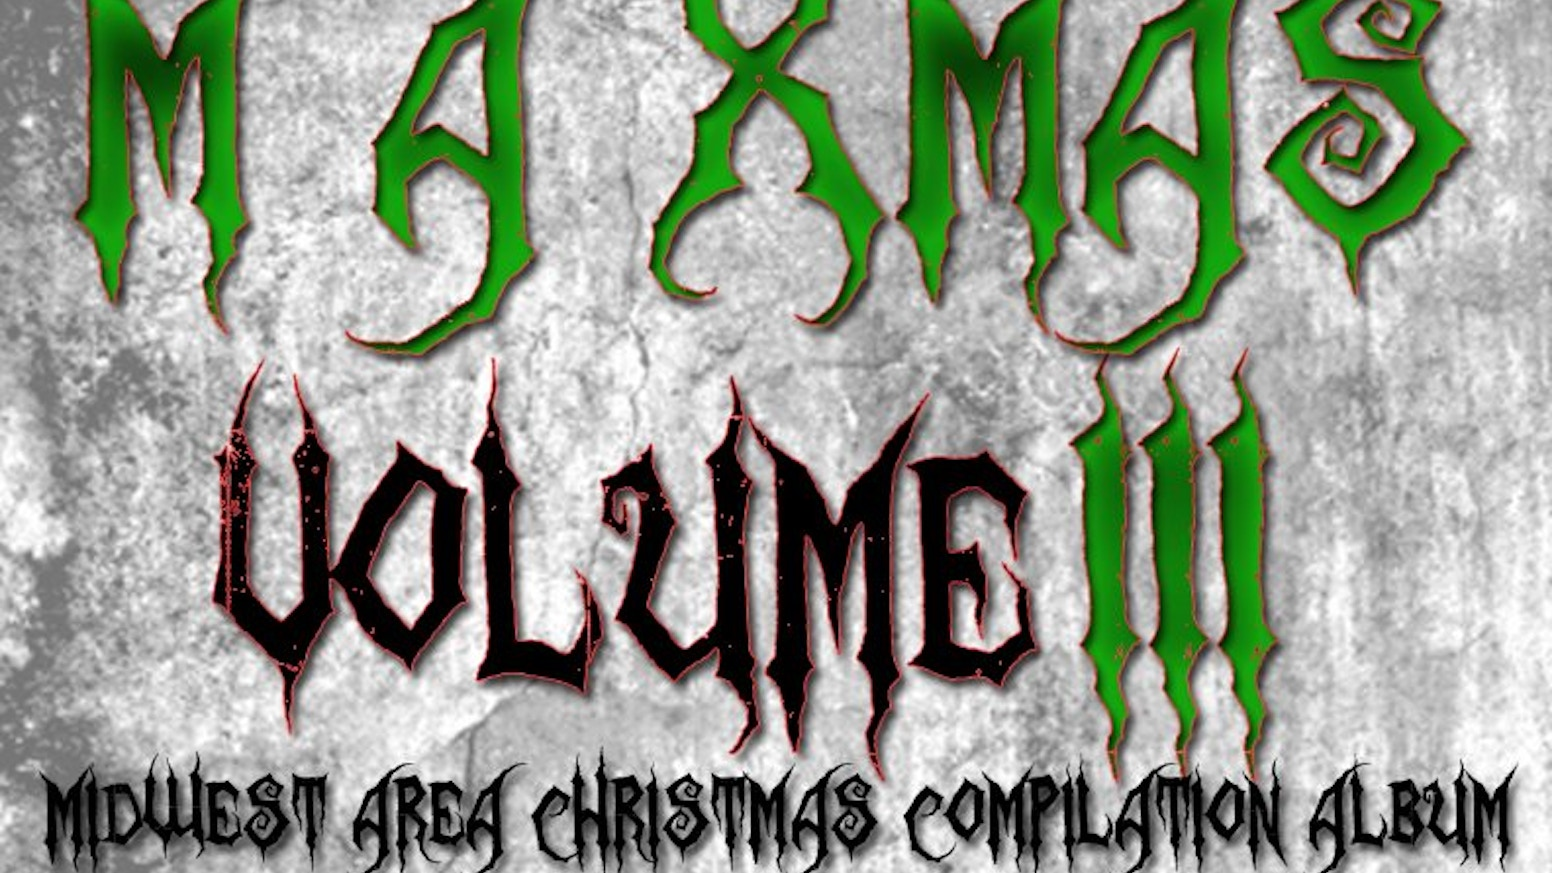 Midwest Area X-Mas Compilation Album (M.A.X-Mas) Vol. III by Jon ...